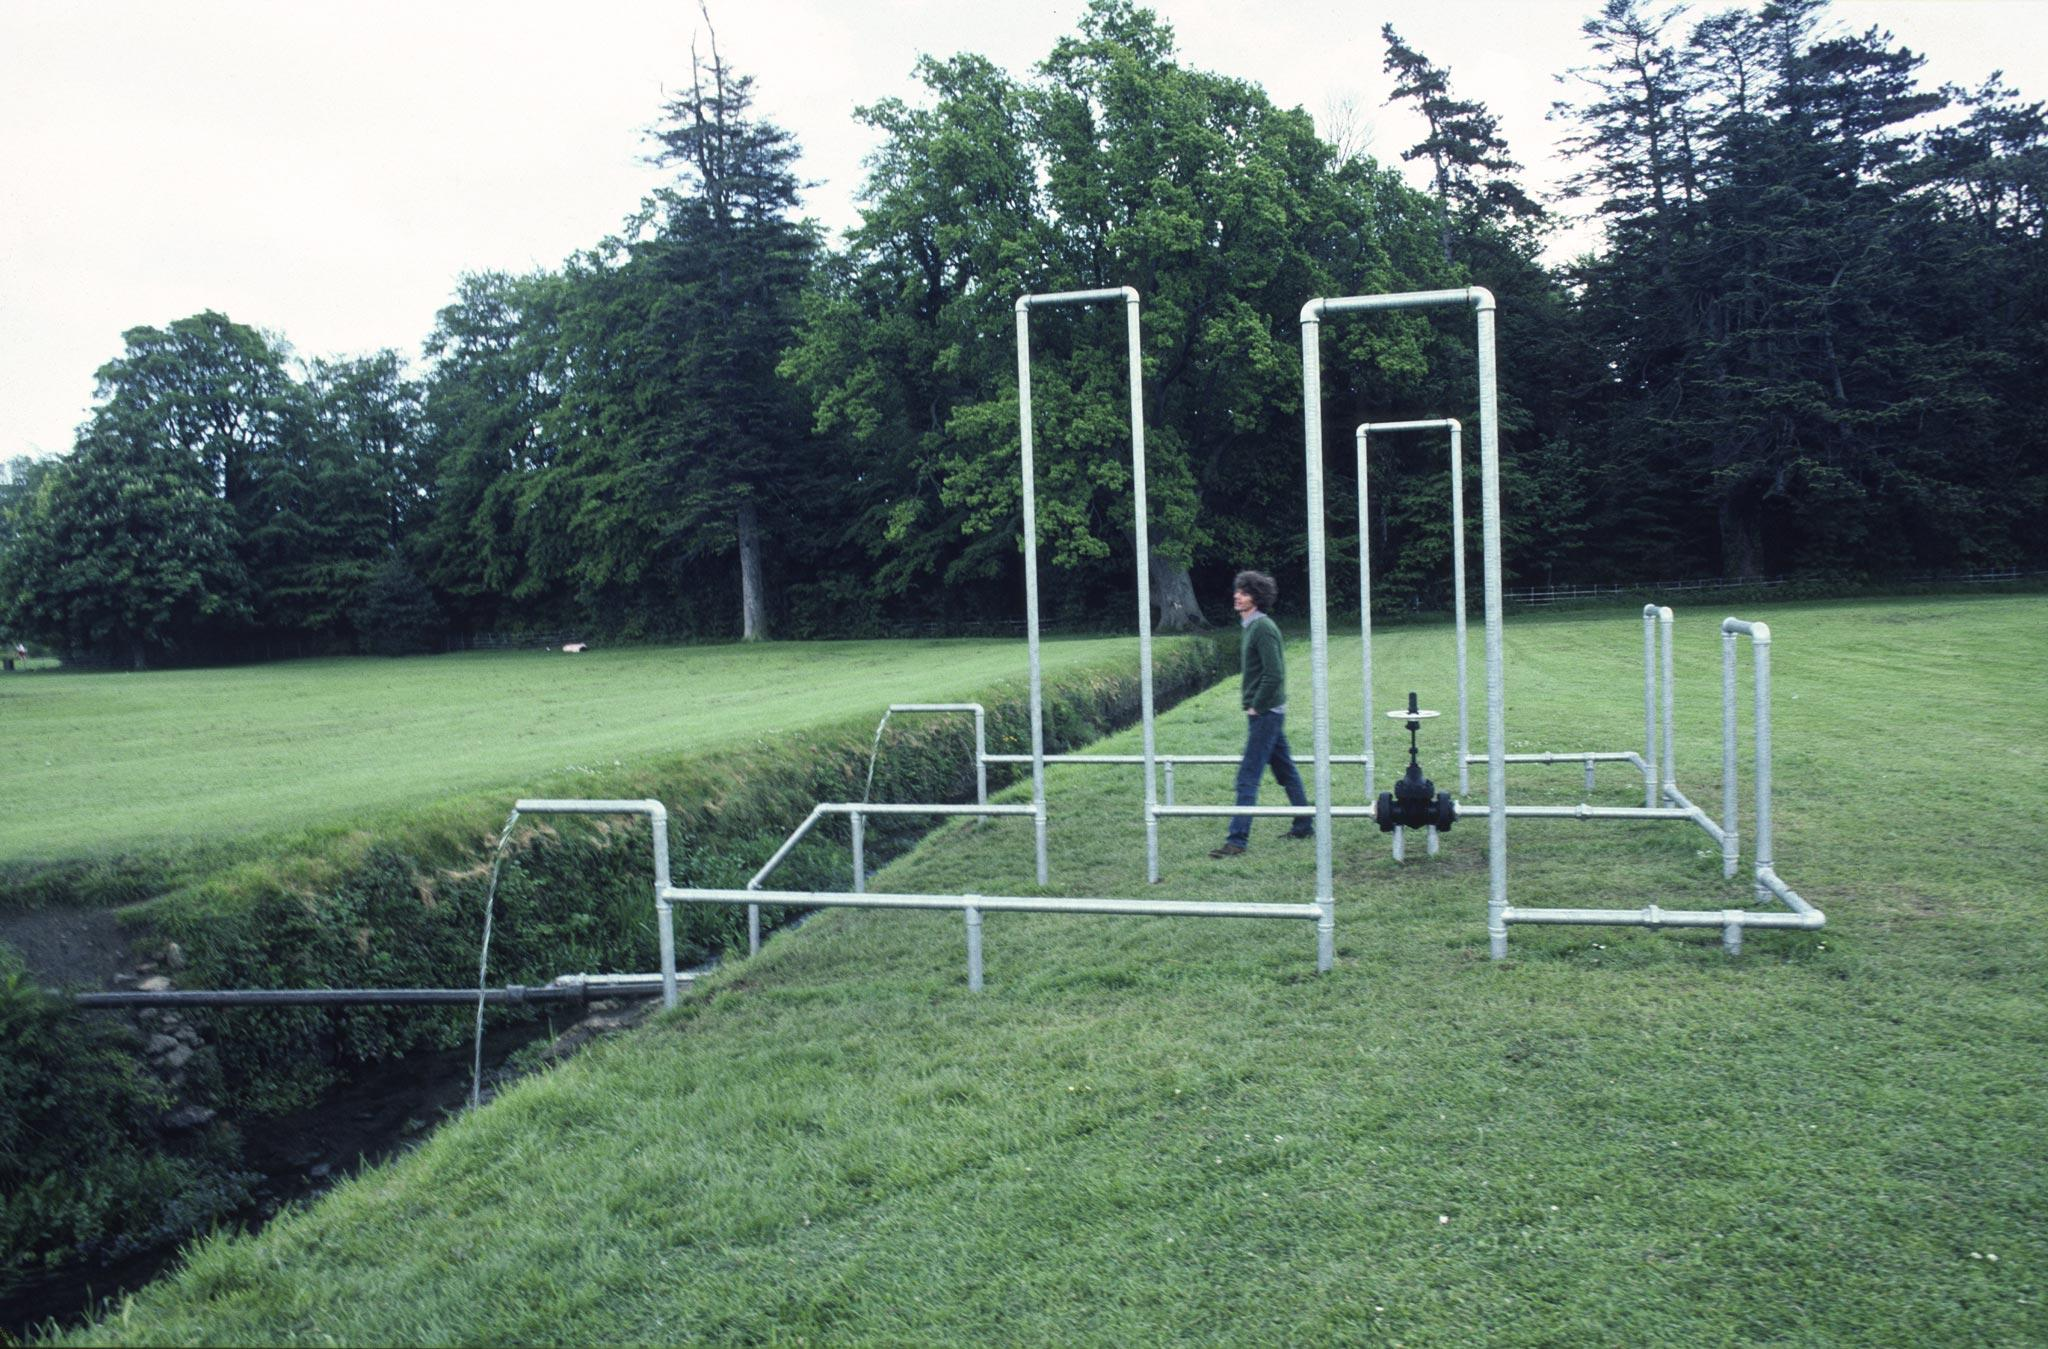 figure walking amongst galvanzied pipes organized into rectilinear structures in a field outside a large home in Ireland